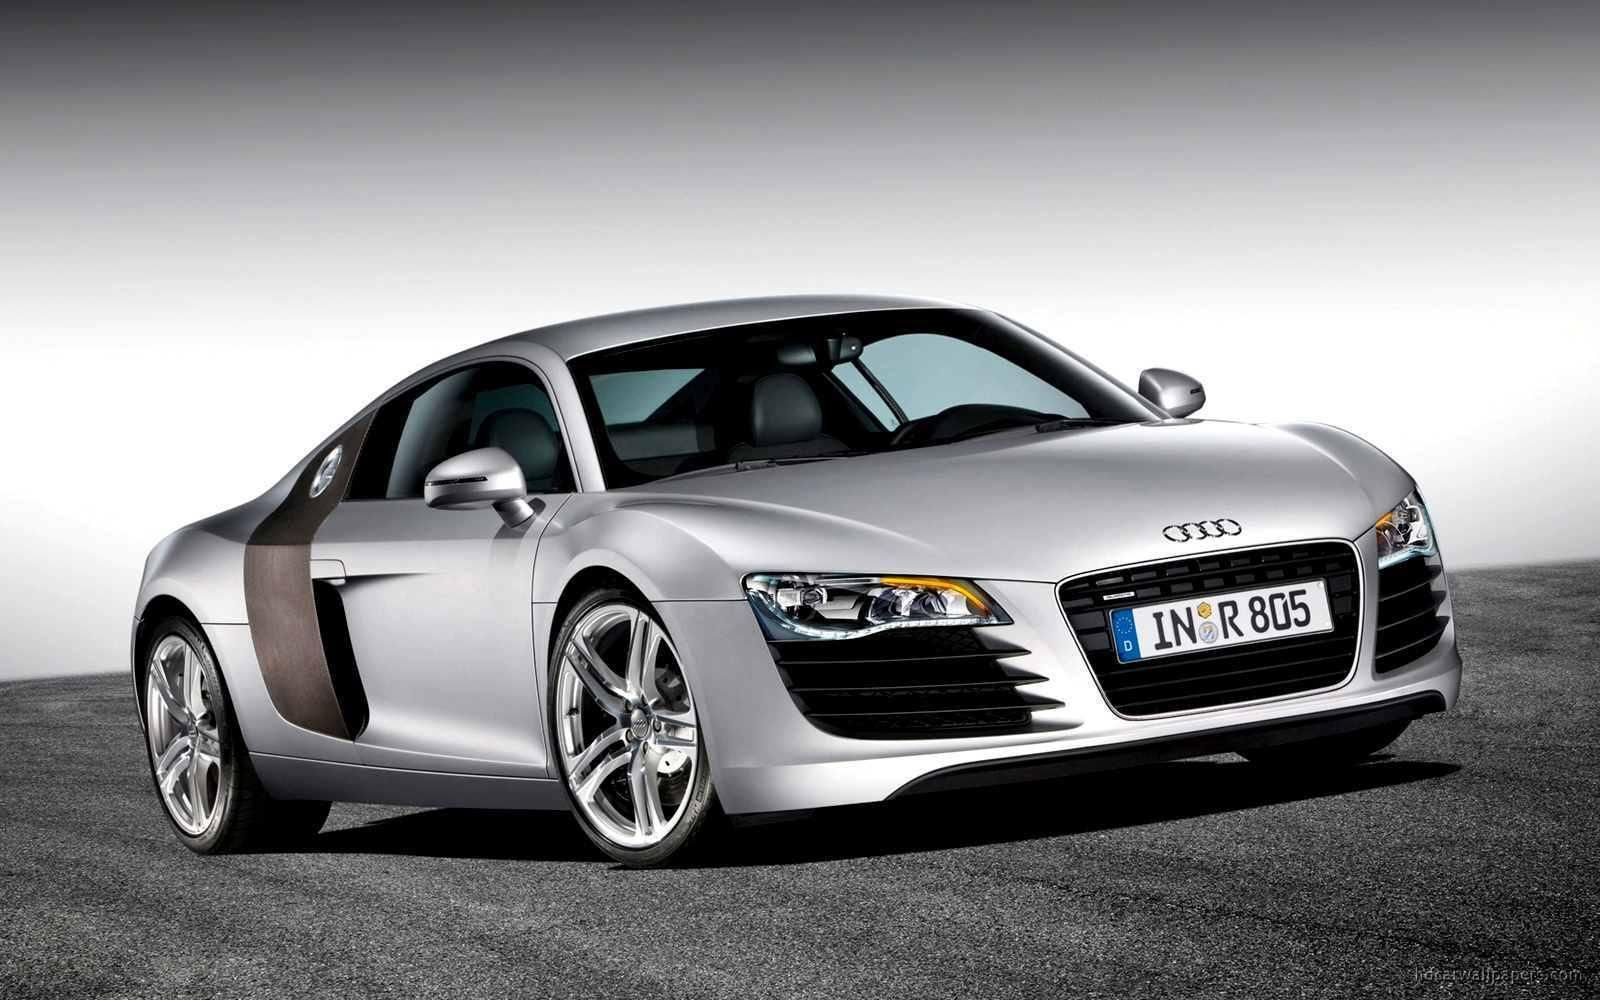 audi r8 3 hd - audi car wallpaper, car pictures, car wallpapers, hd